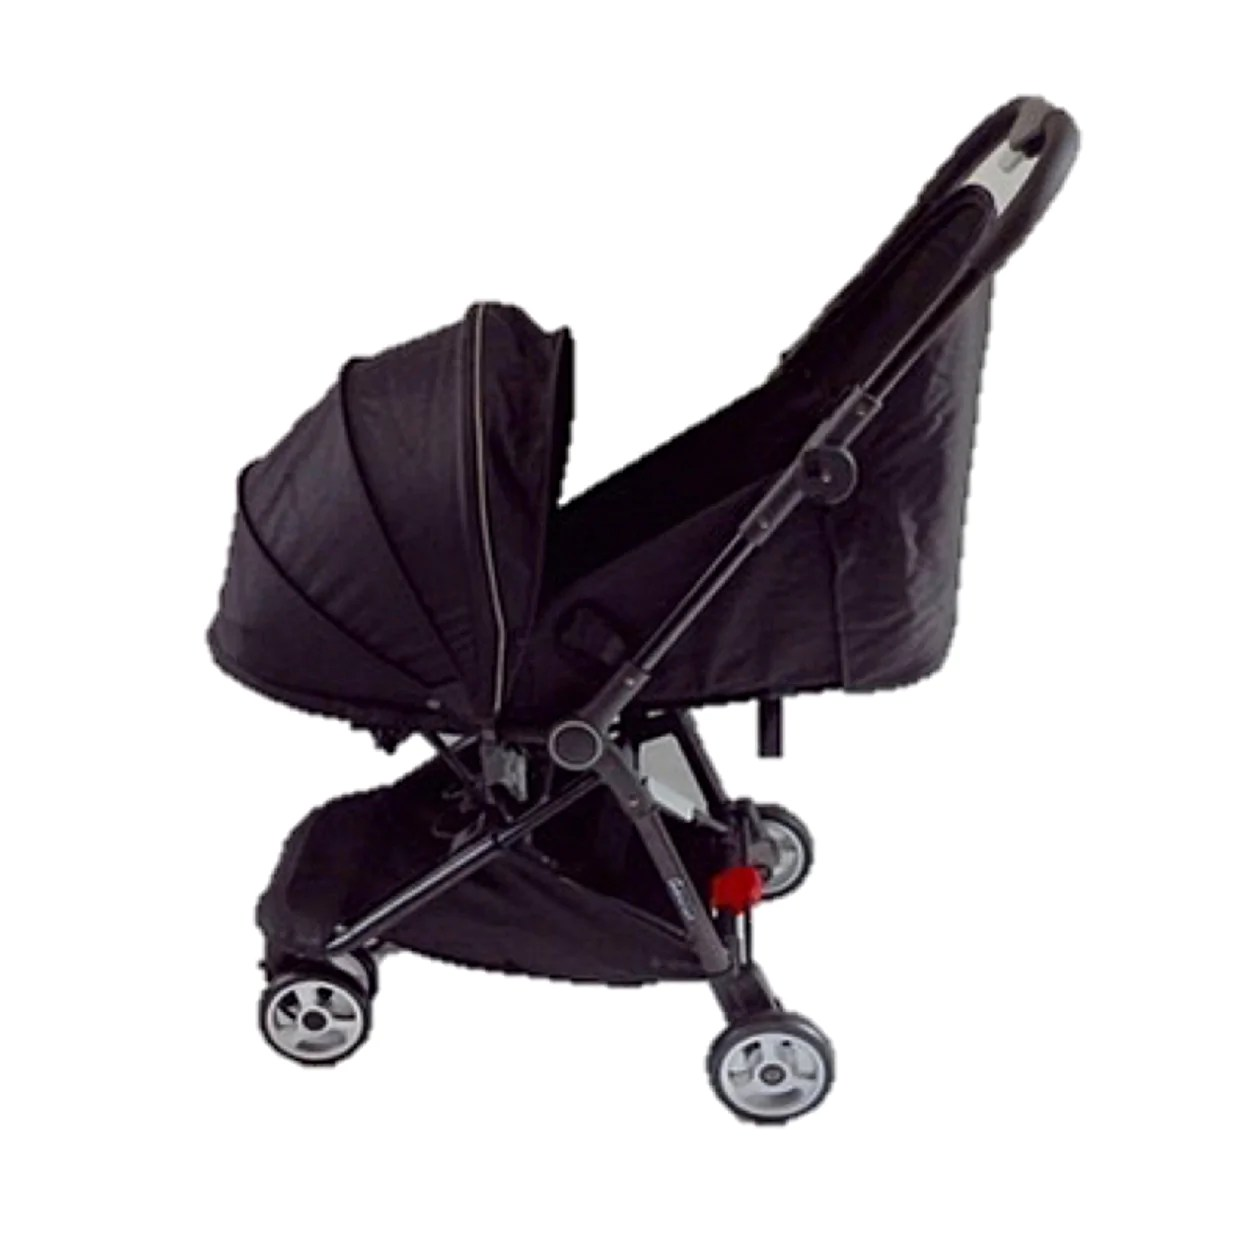 Double Pram Australia Reviews Fifo Plus Genius Stroller Classic Black